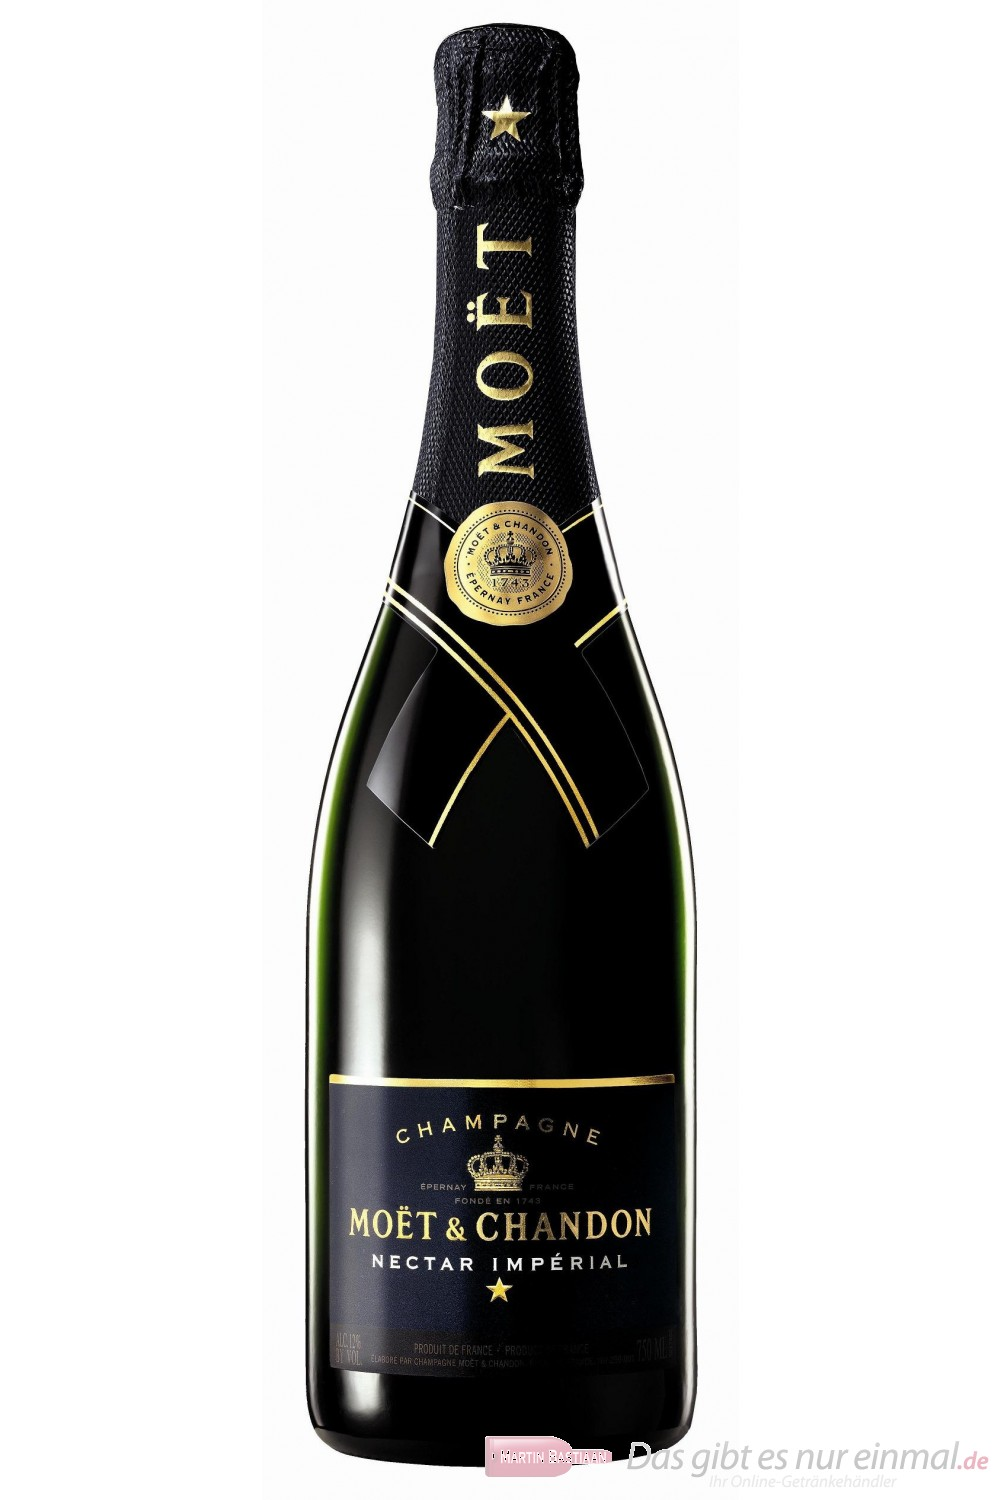 Moet & Chandon Champagner Nectar Impérial 12% 0,75l Flasche